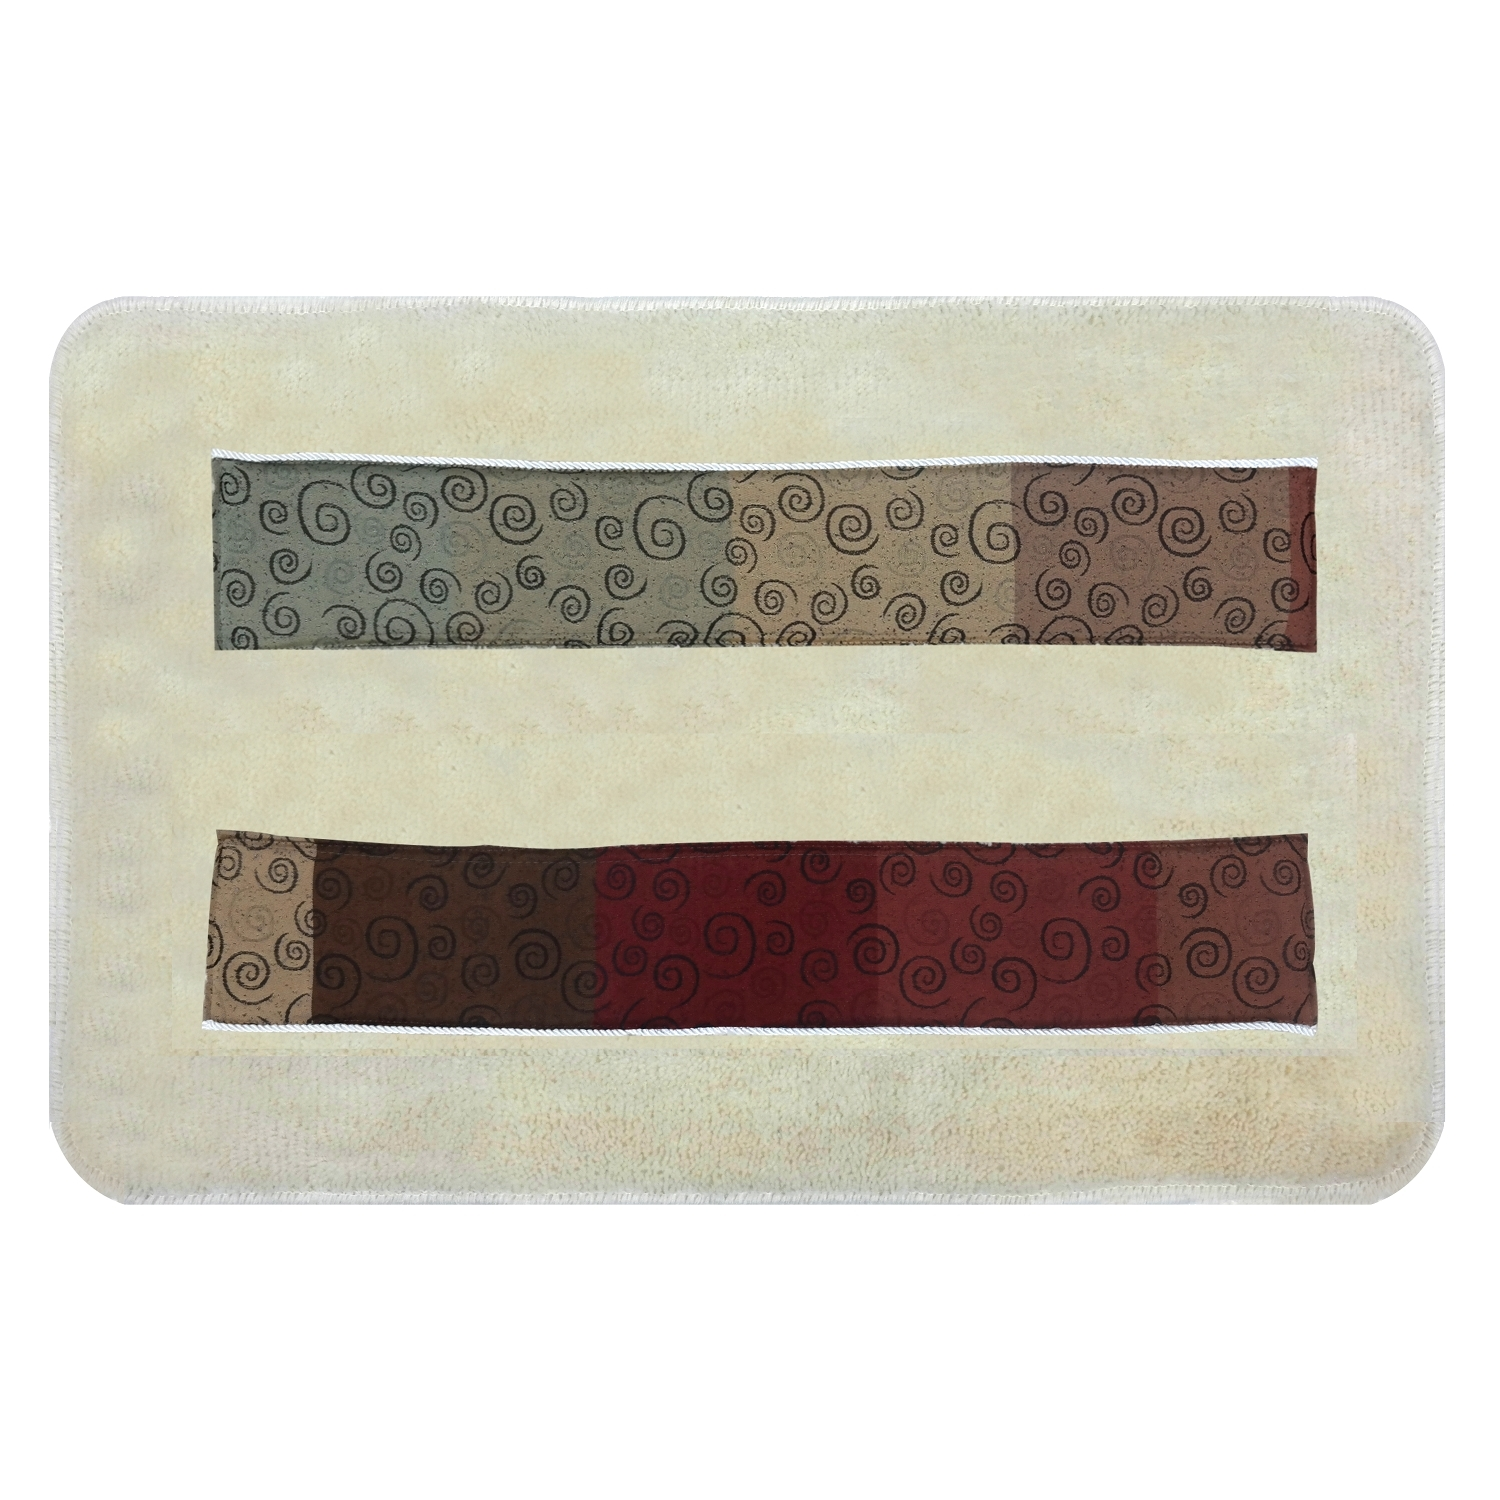 Popular Bath Miramar Bath Collection - 21 x 32 Banded Bathroom Rug